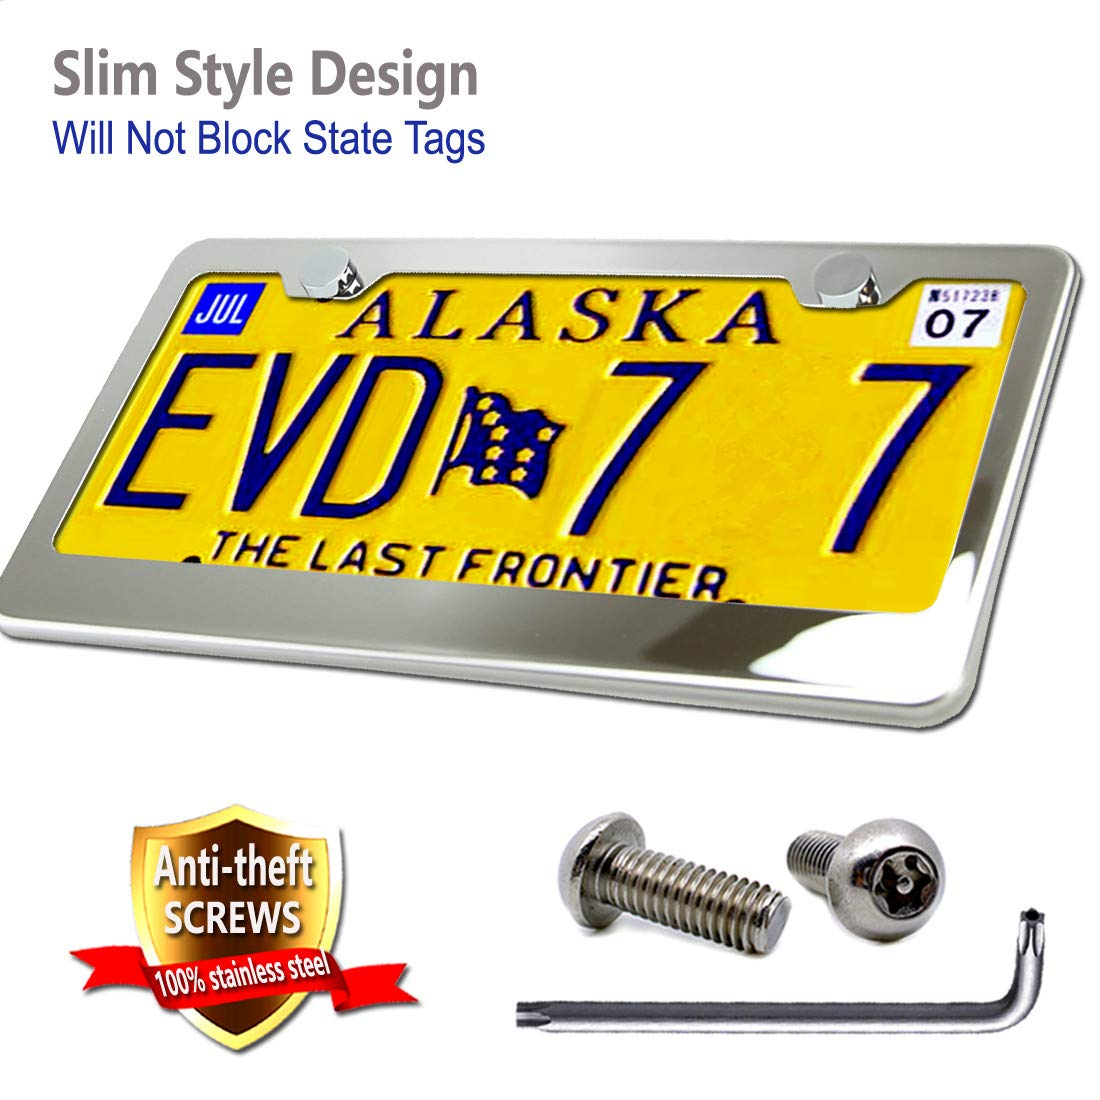 Aootf License Plate Frame-304 High-end Stainless Steel License Plate Frames Mirror Finish and License Plate Screws Anti Theft,Screws Caps-21Set,Practical Gifts